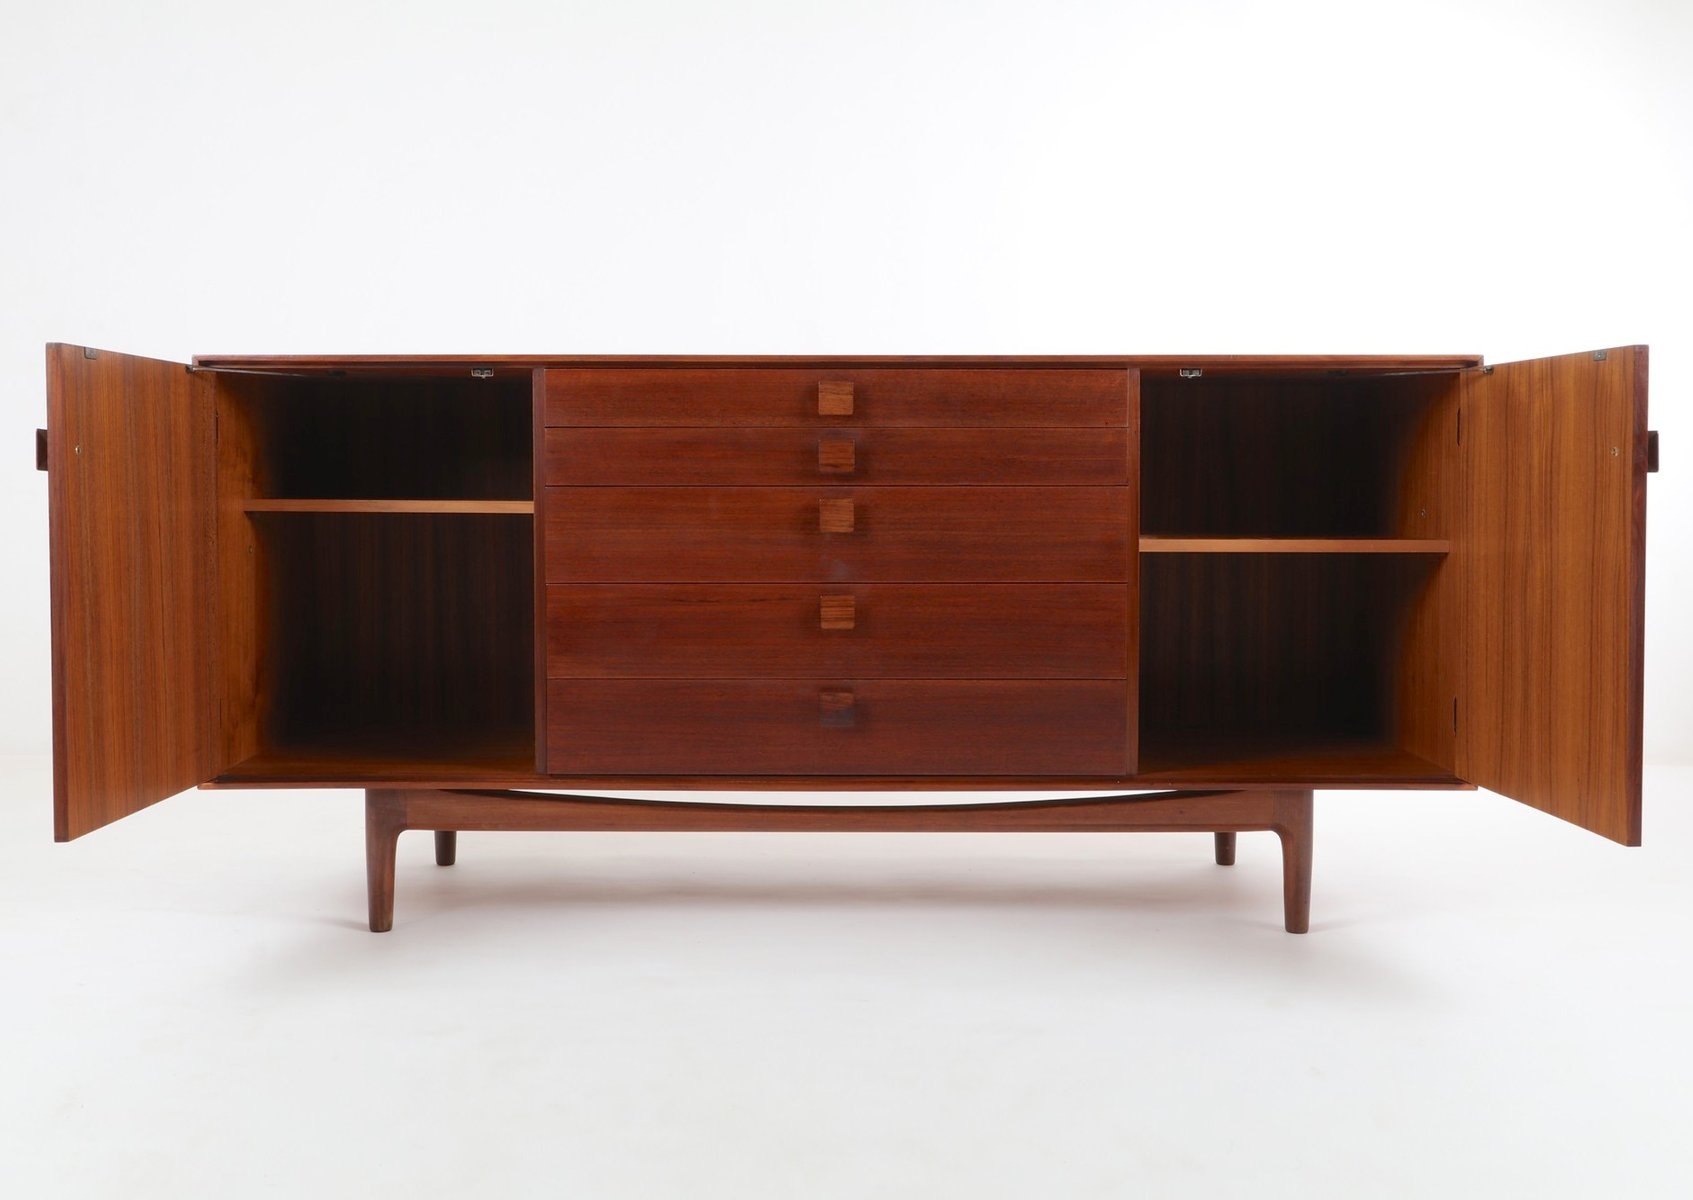 d nisches teak sideboard von ib kofod larsen f r g plan 1960er bei pamono kaufen. Black Bedroom Furniture Sets. Home Design Ideas